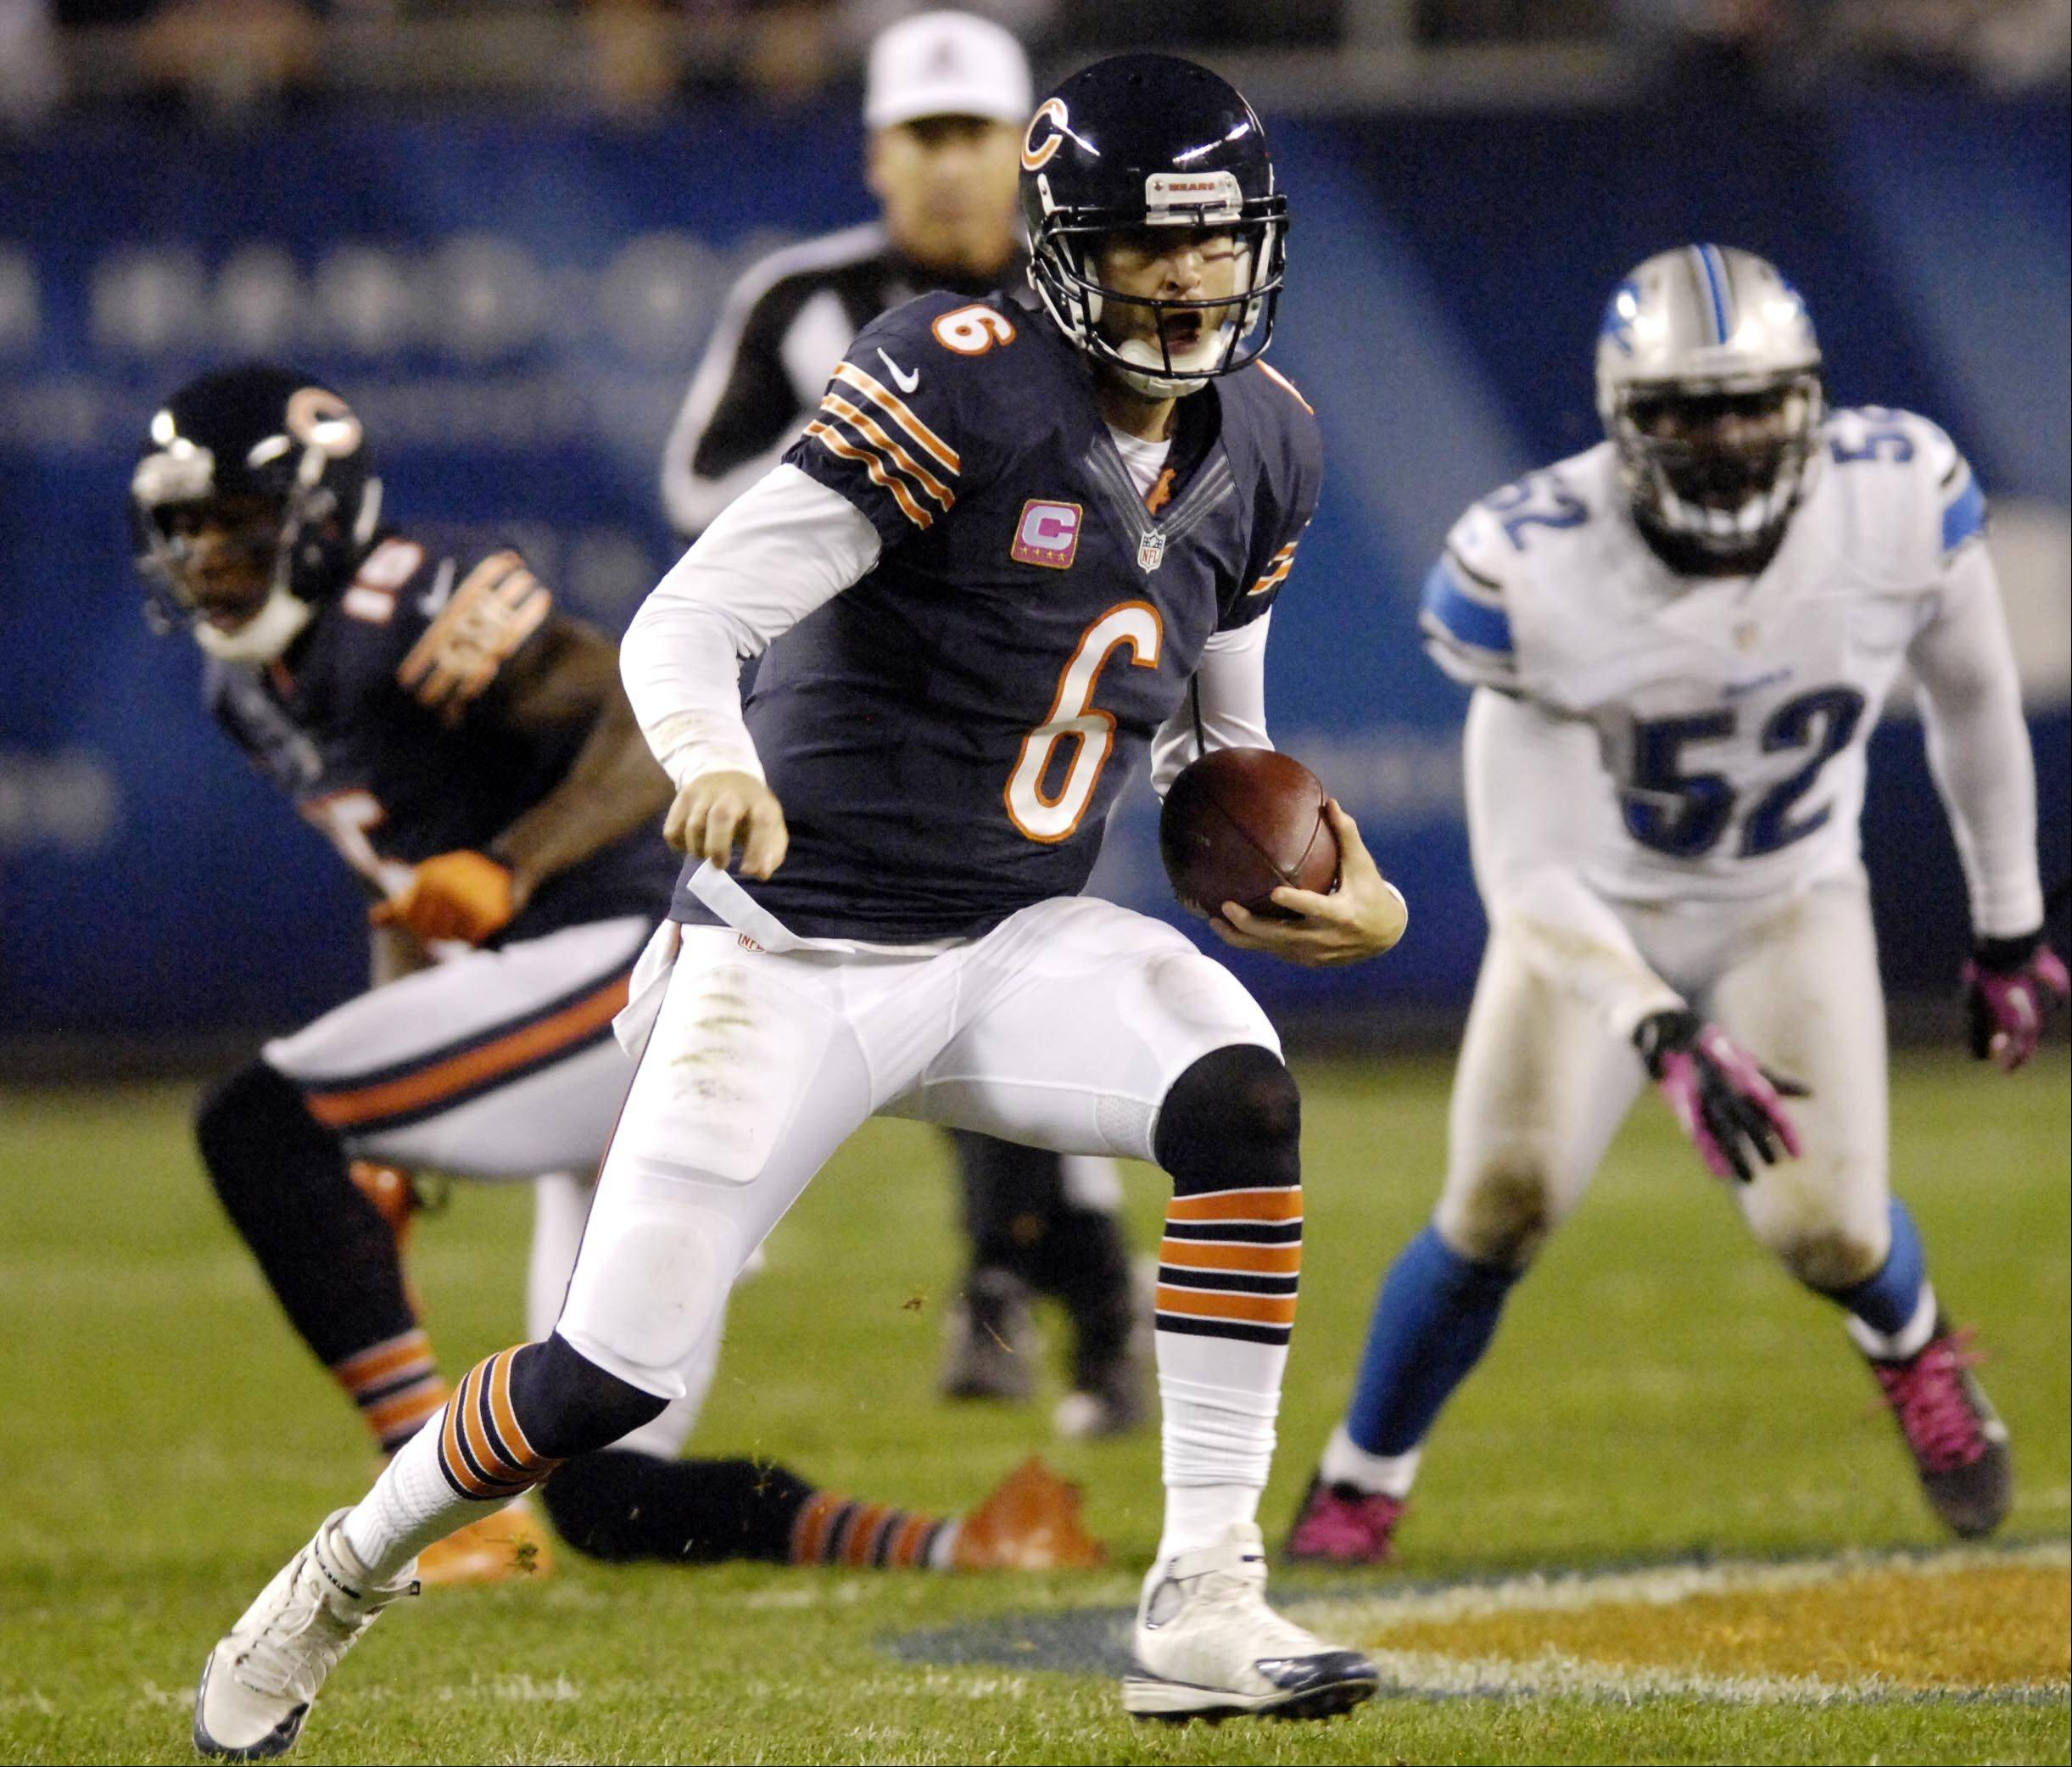 Chicago Bears quarterback Jay Cutler scrambles against the Detroit Lions.